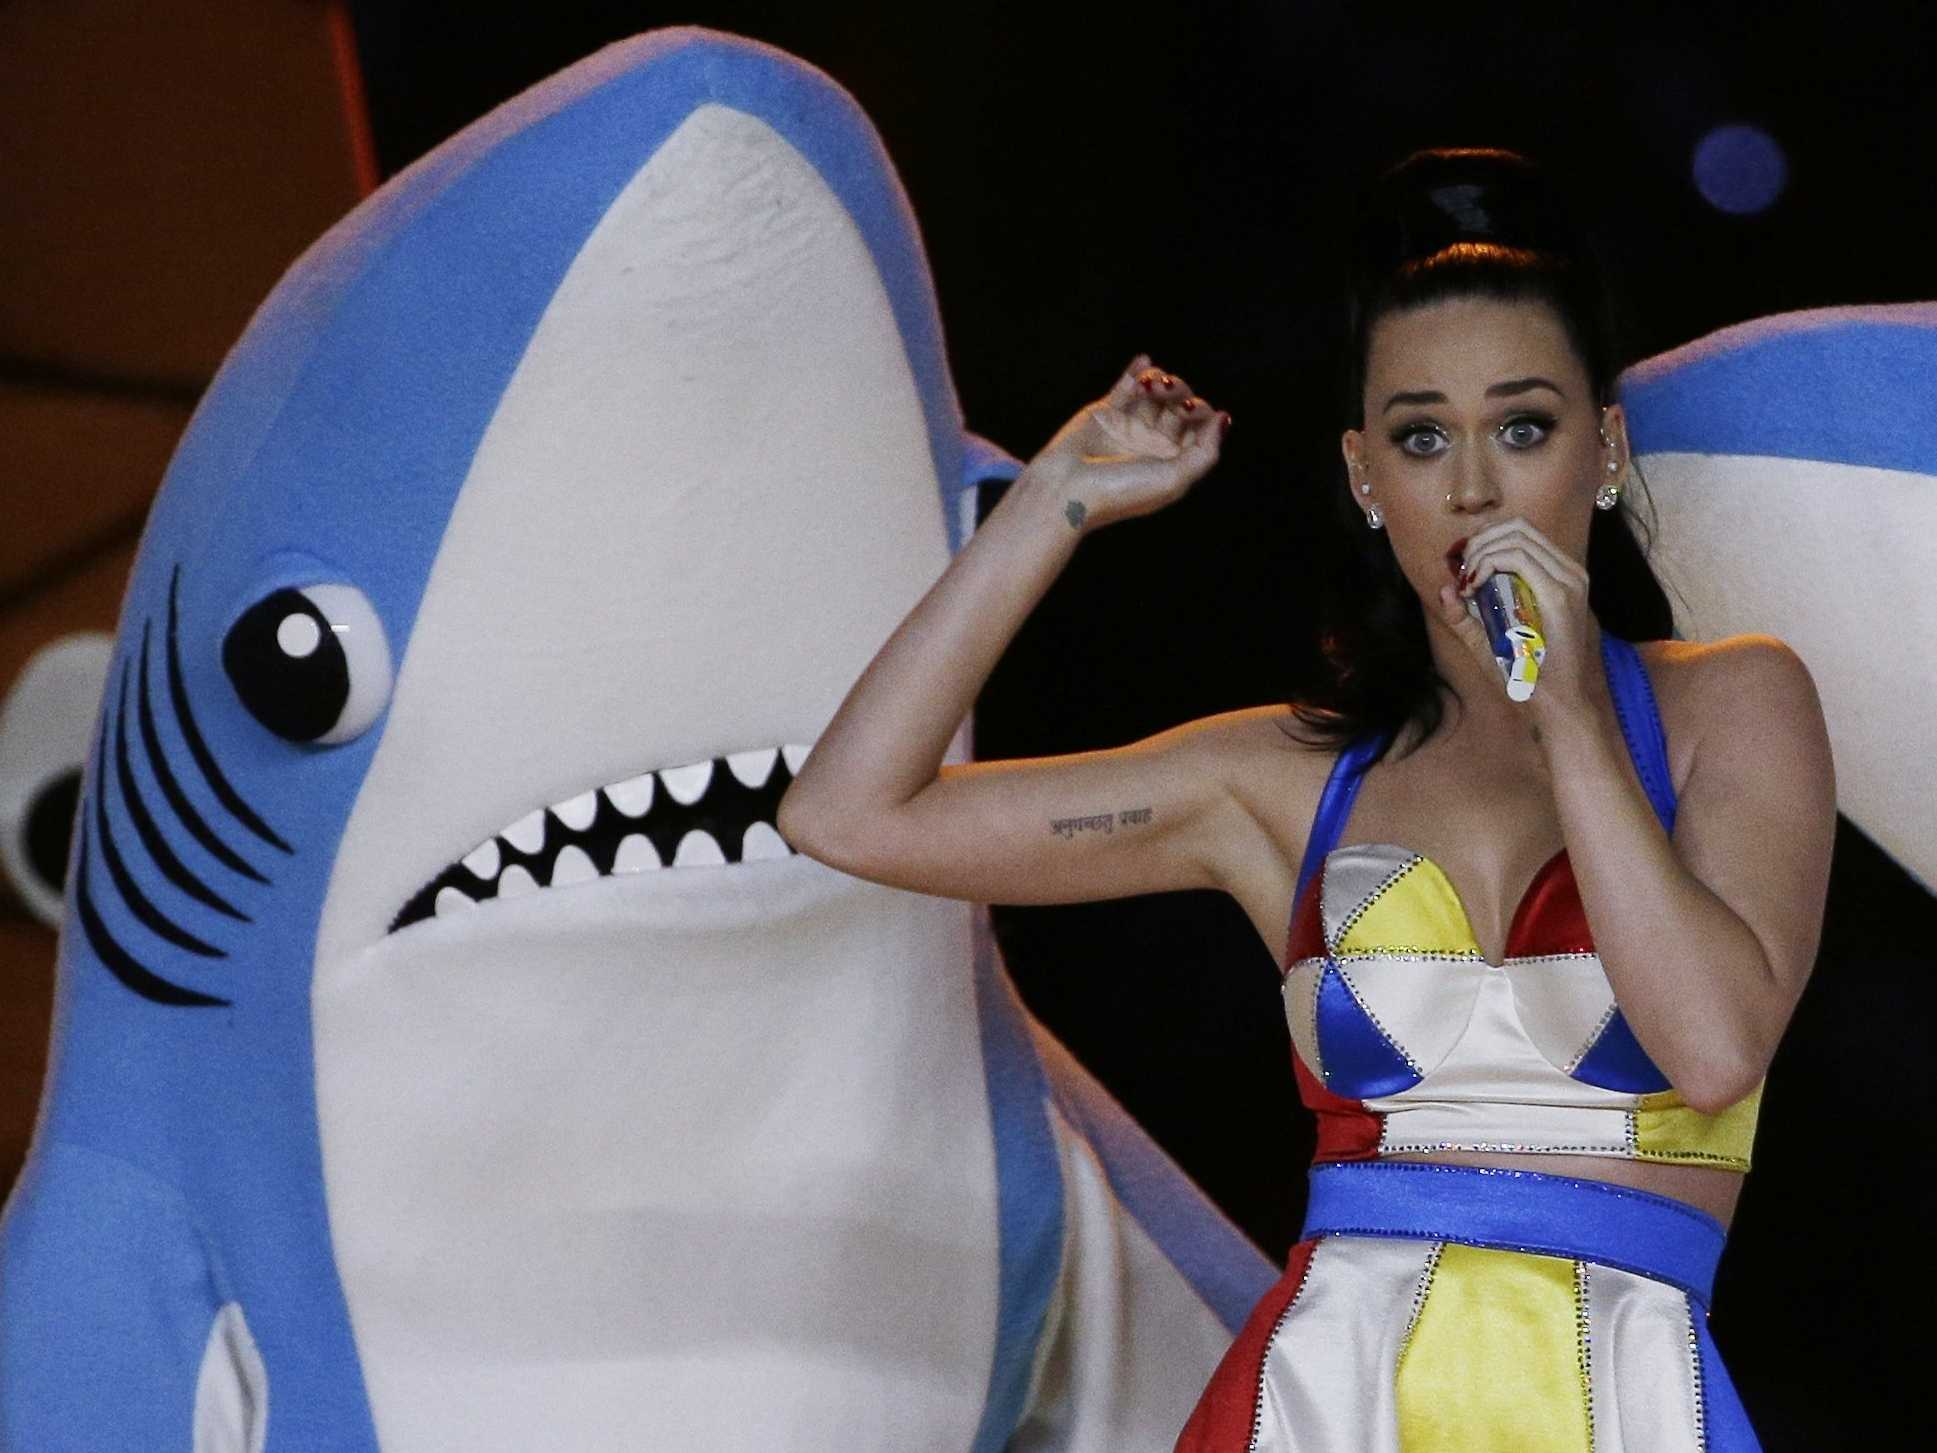 BRB, ordering my Left Shark costume real quick